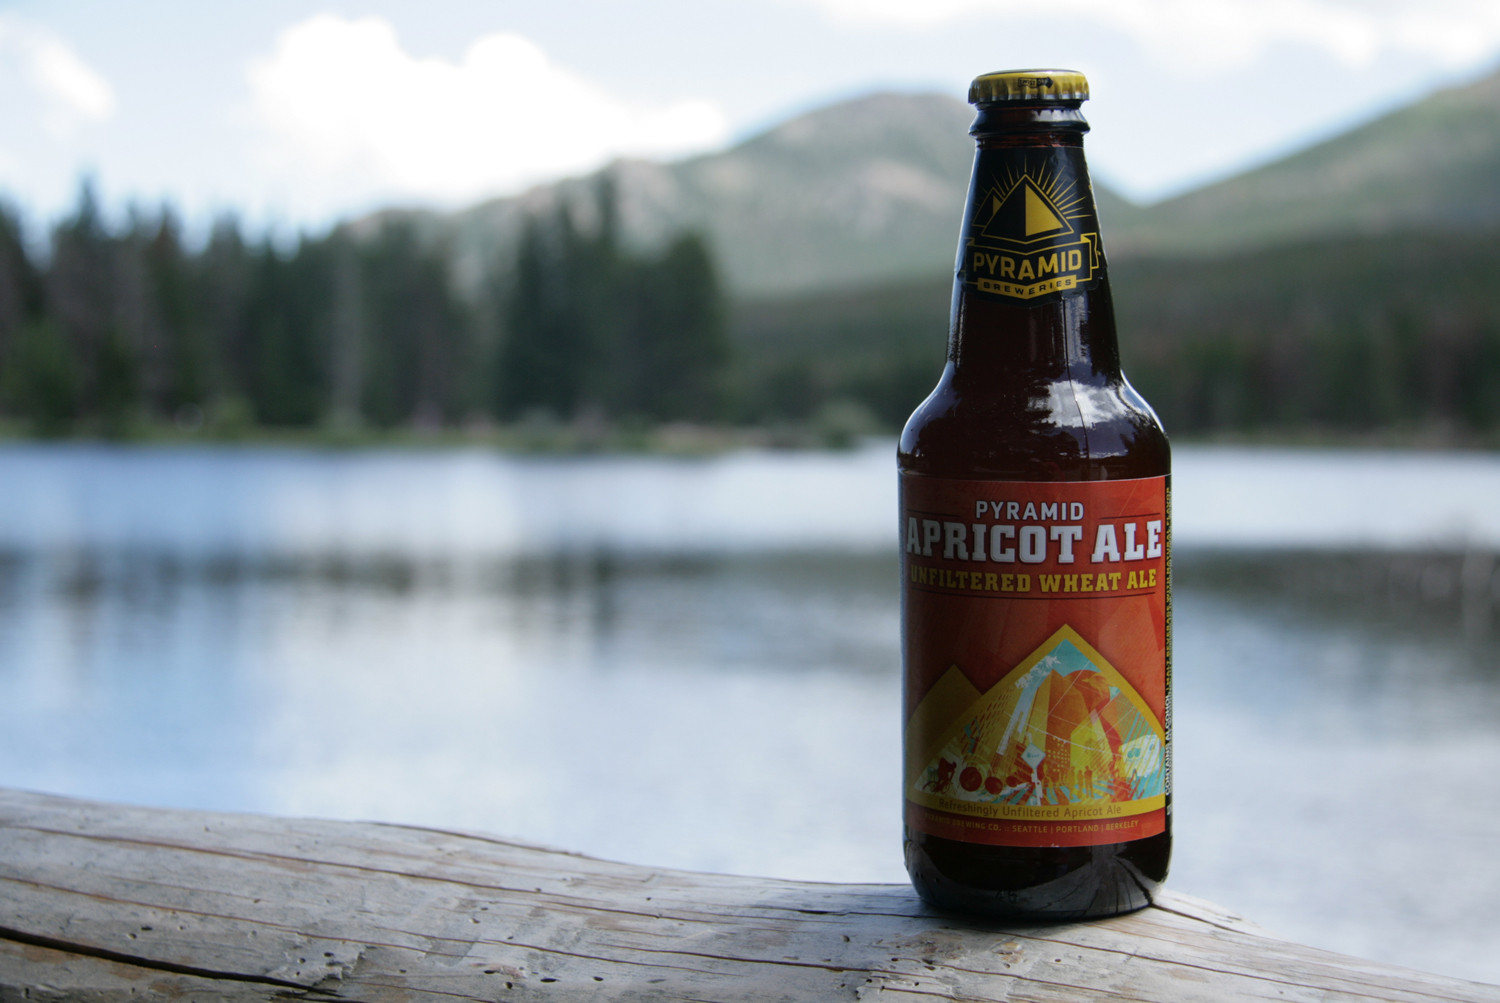 Enjoy Pyramid's Apricot Fruit Wheat Ale outside with nature.